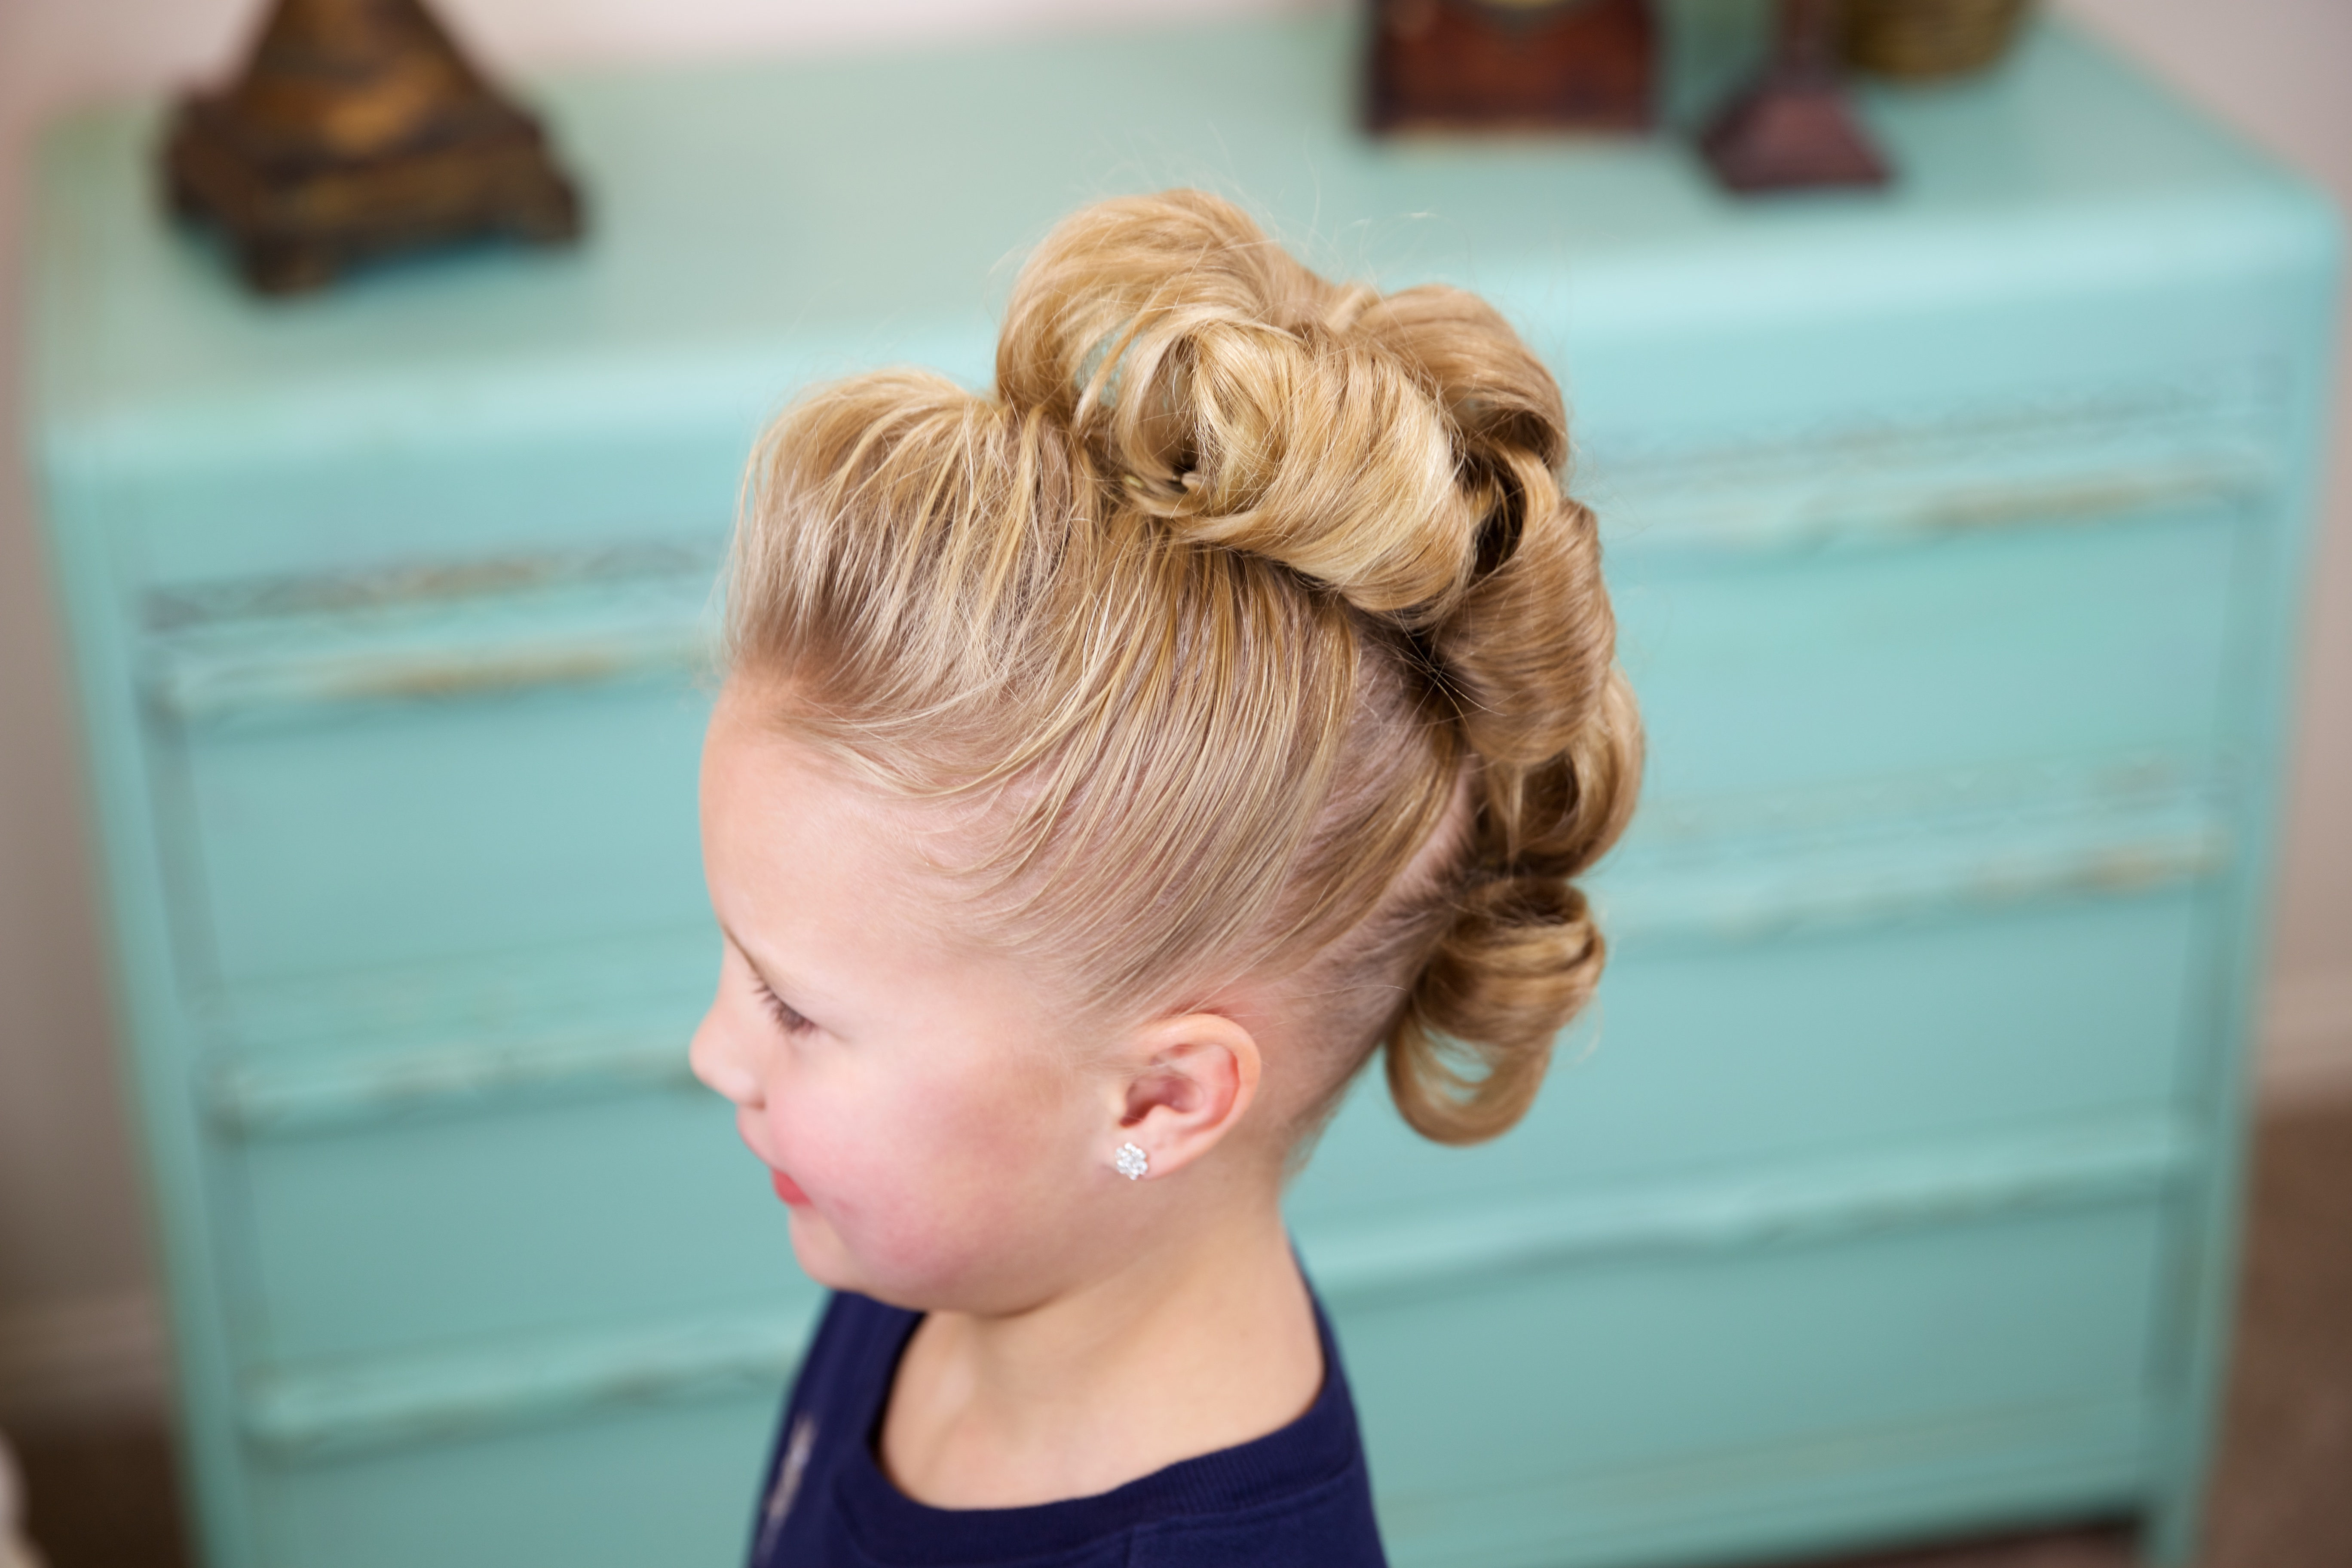 Hairstyles For Dance (View 9 of 20)